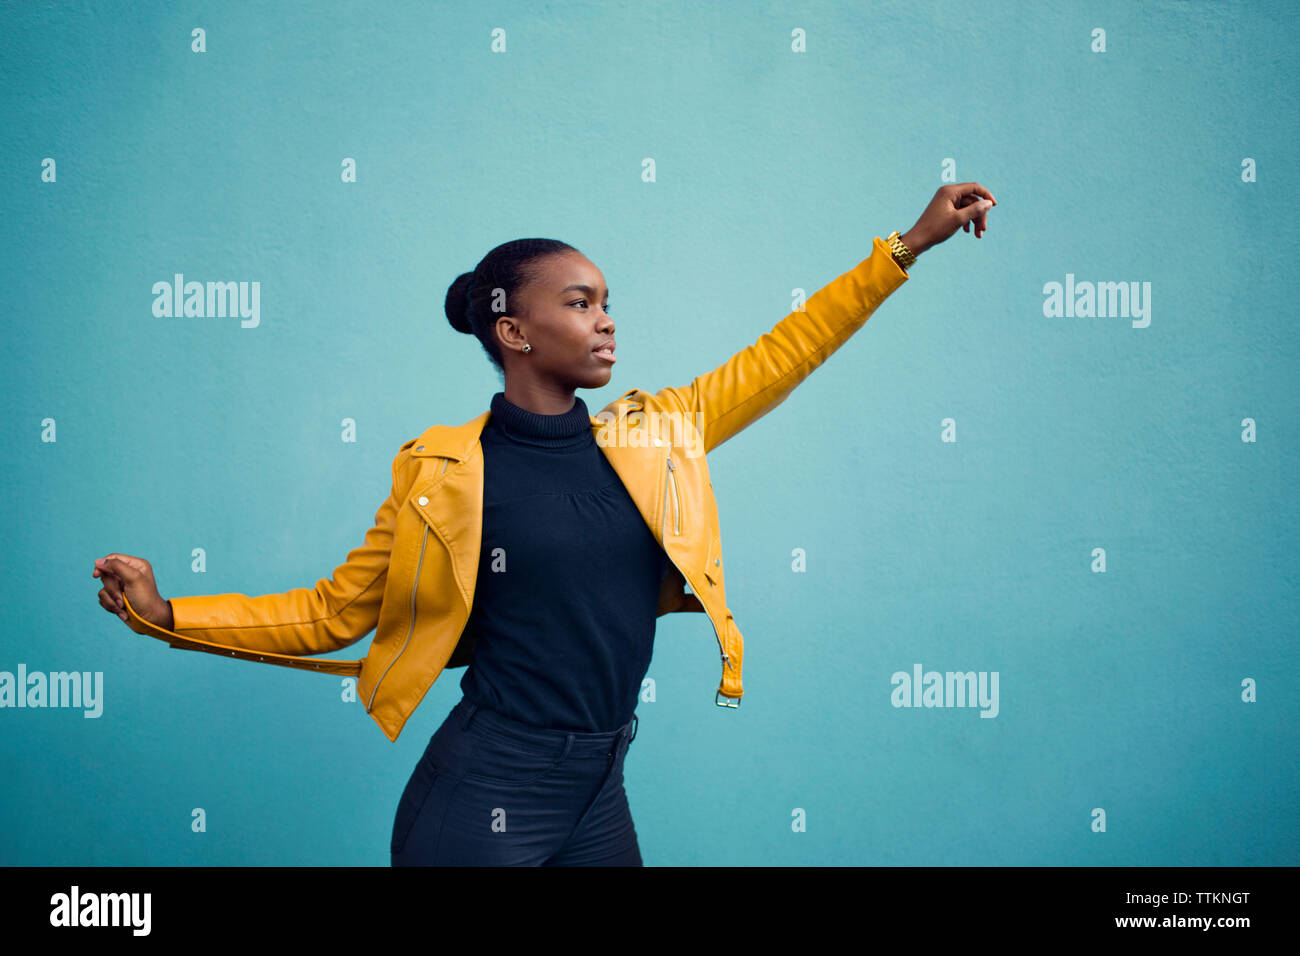 Confident fashion model standing with arms outstretched against blue wall Stock Photo